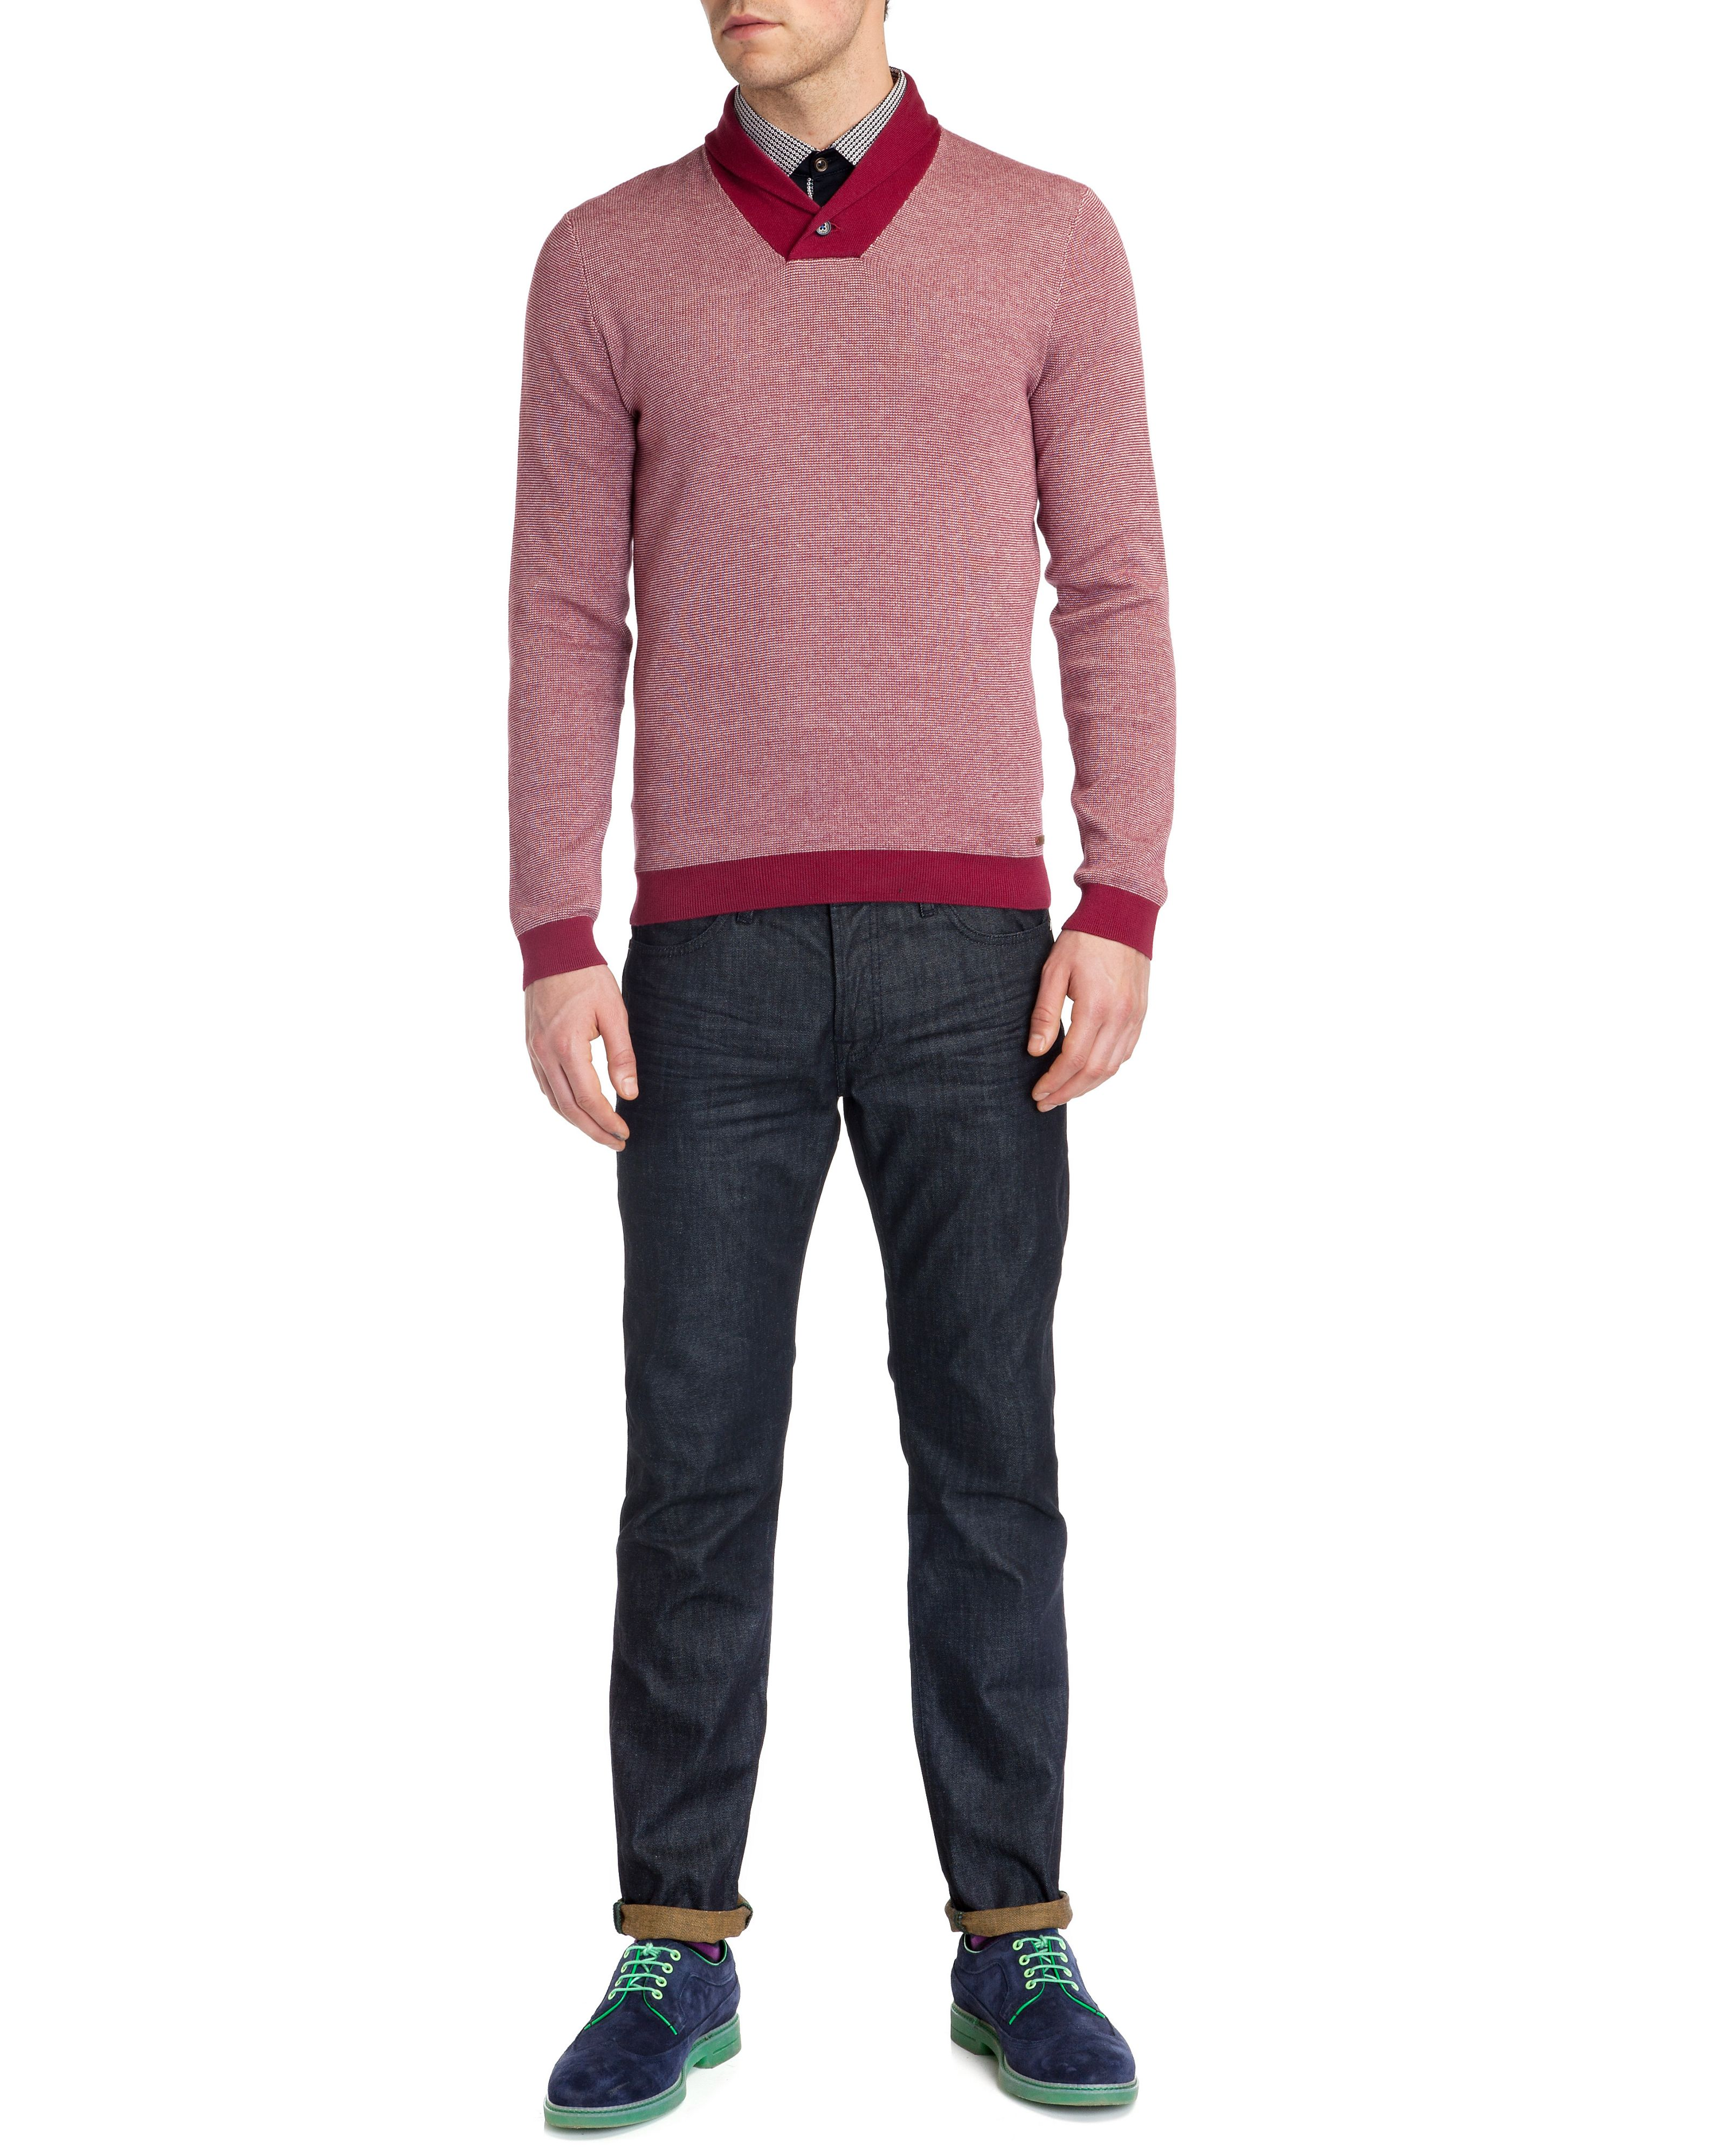 Hortie shawl neck top